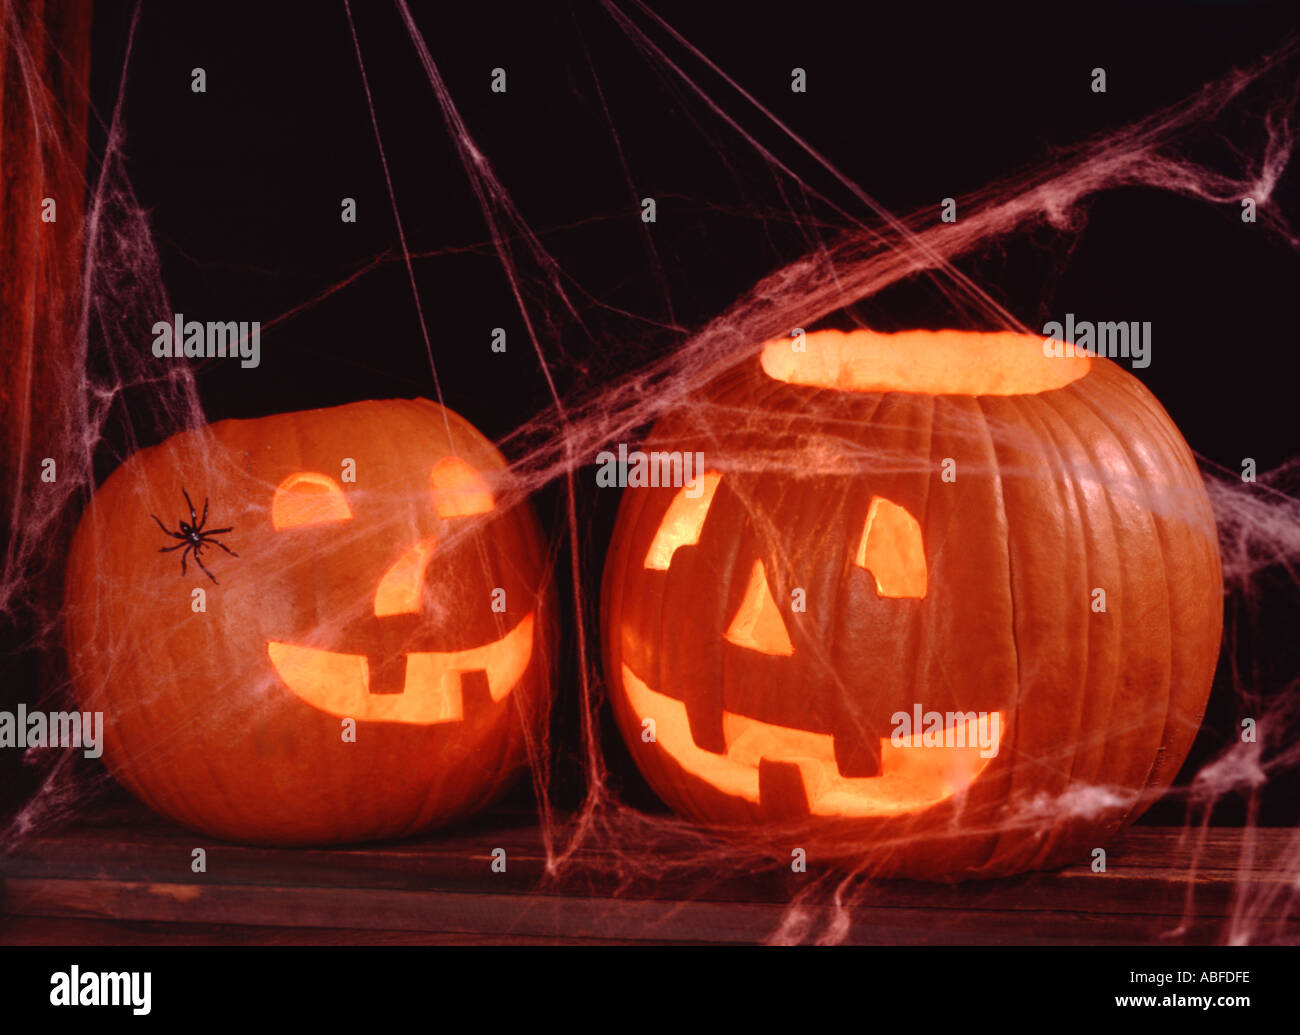 Two illuminated Jack O Lanterns celebrate Halloween amid a covering of spider webs on an old wood background - Stock Image